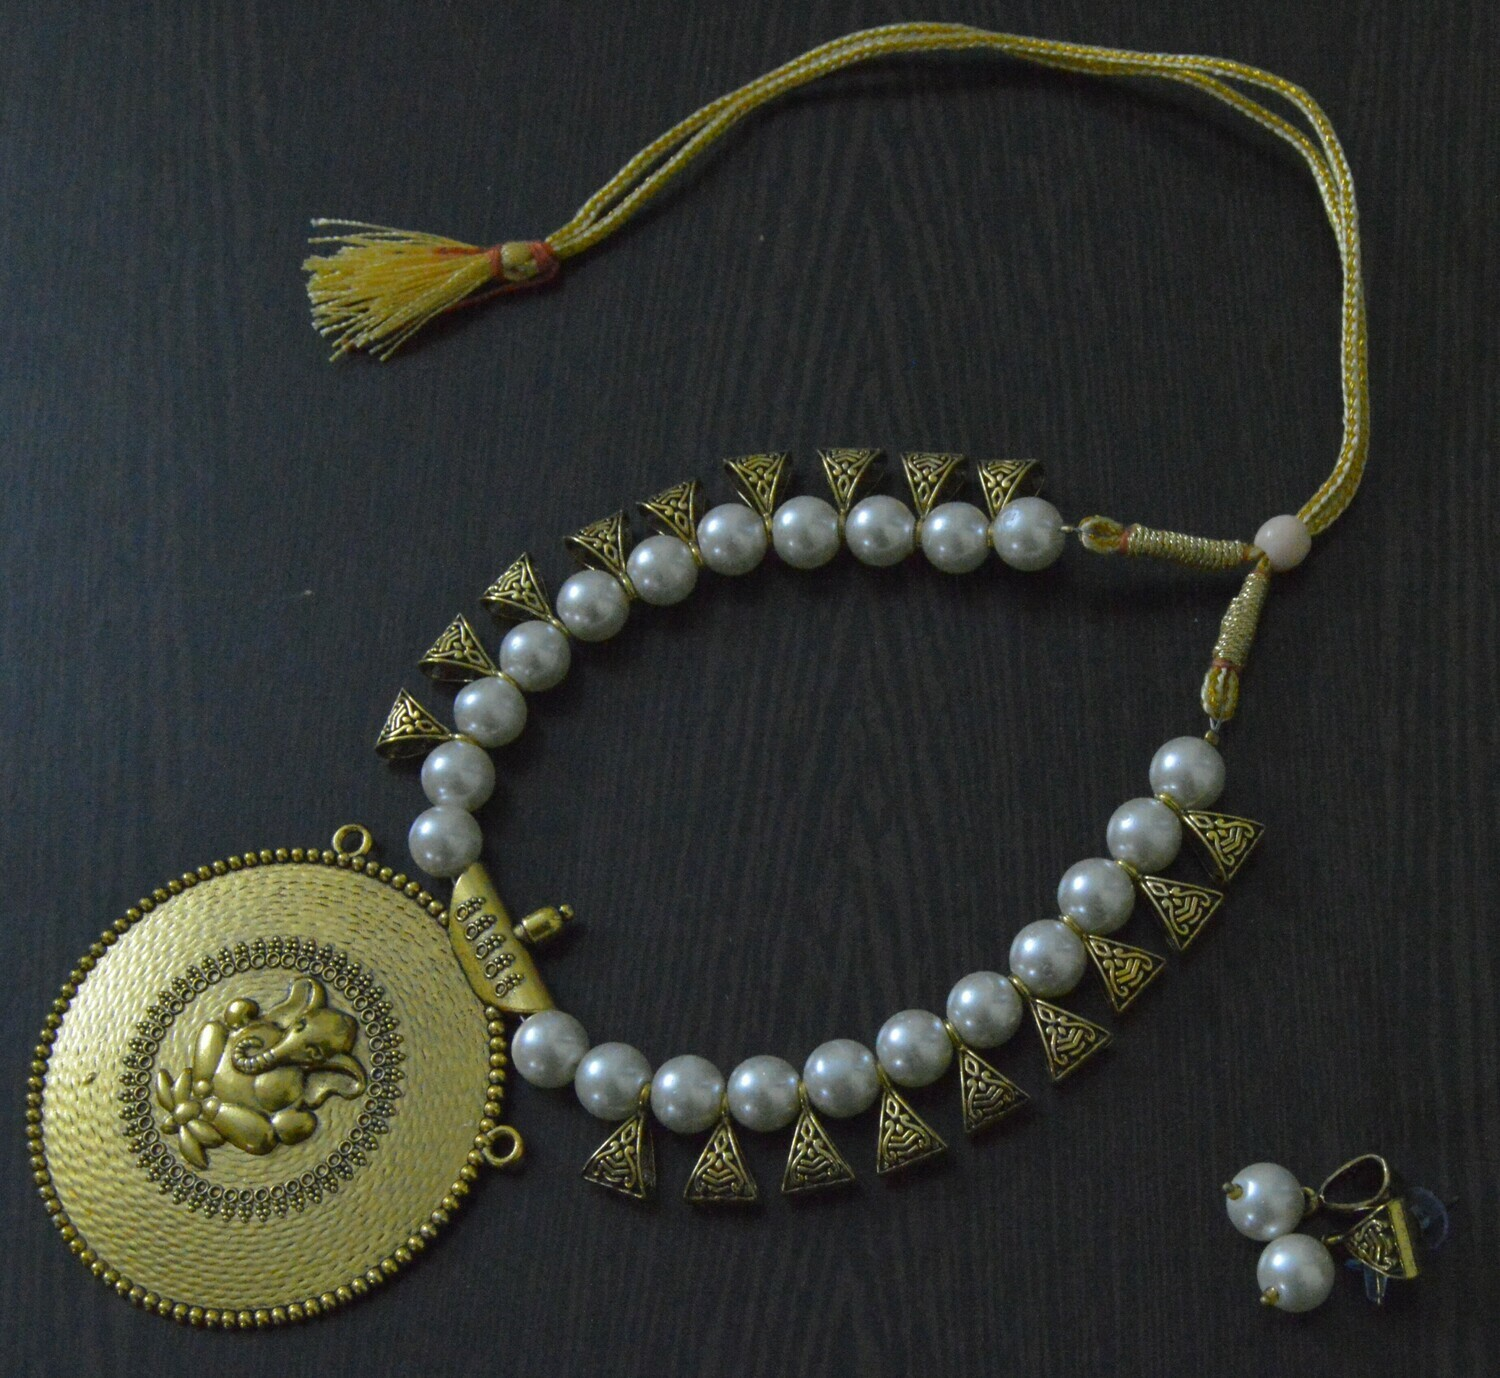 PEARL BEADS GANESH NECKLACE